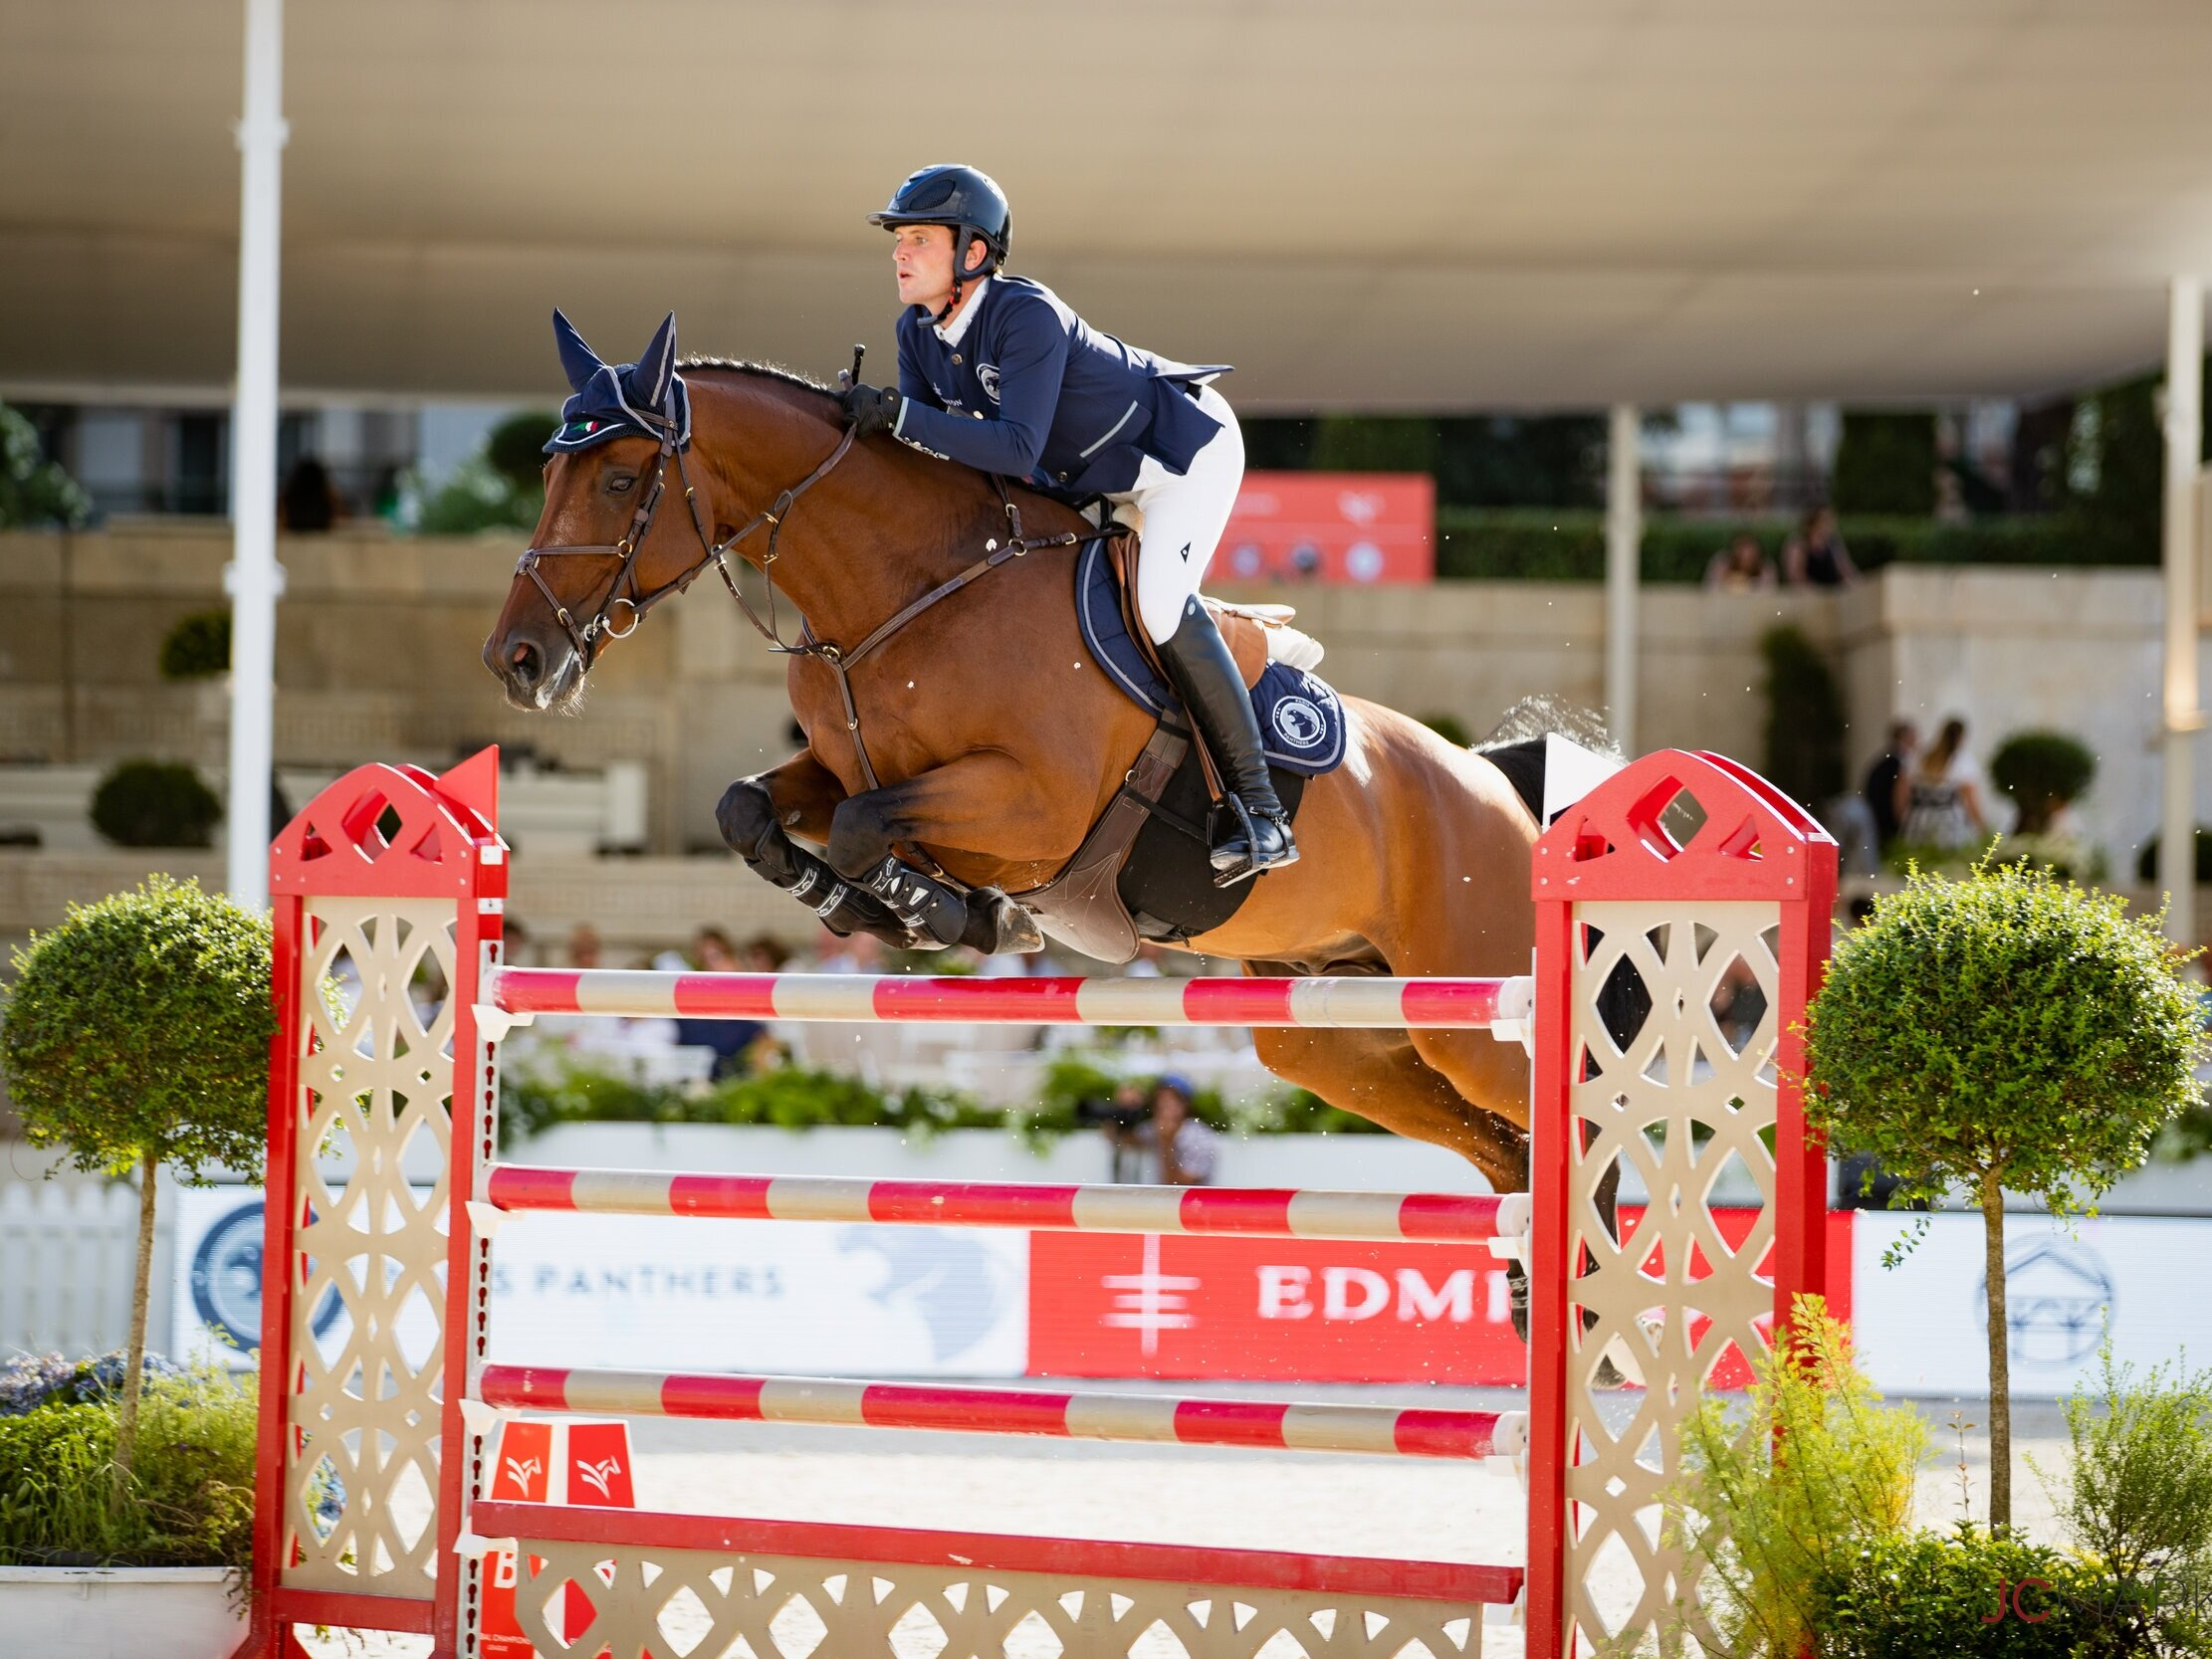 Darragh Kenny and Important de Muze at Global Champions League of Rome 2019. Photo by JC Markun.